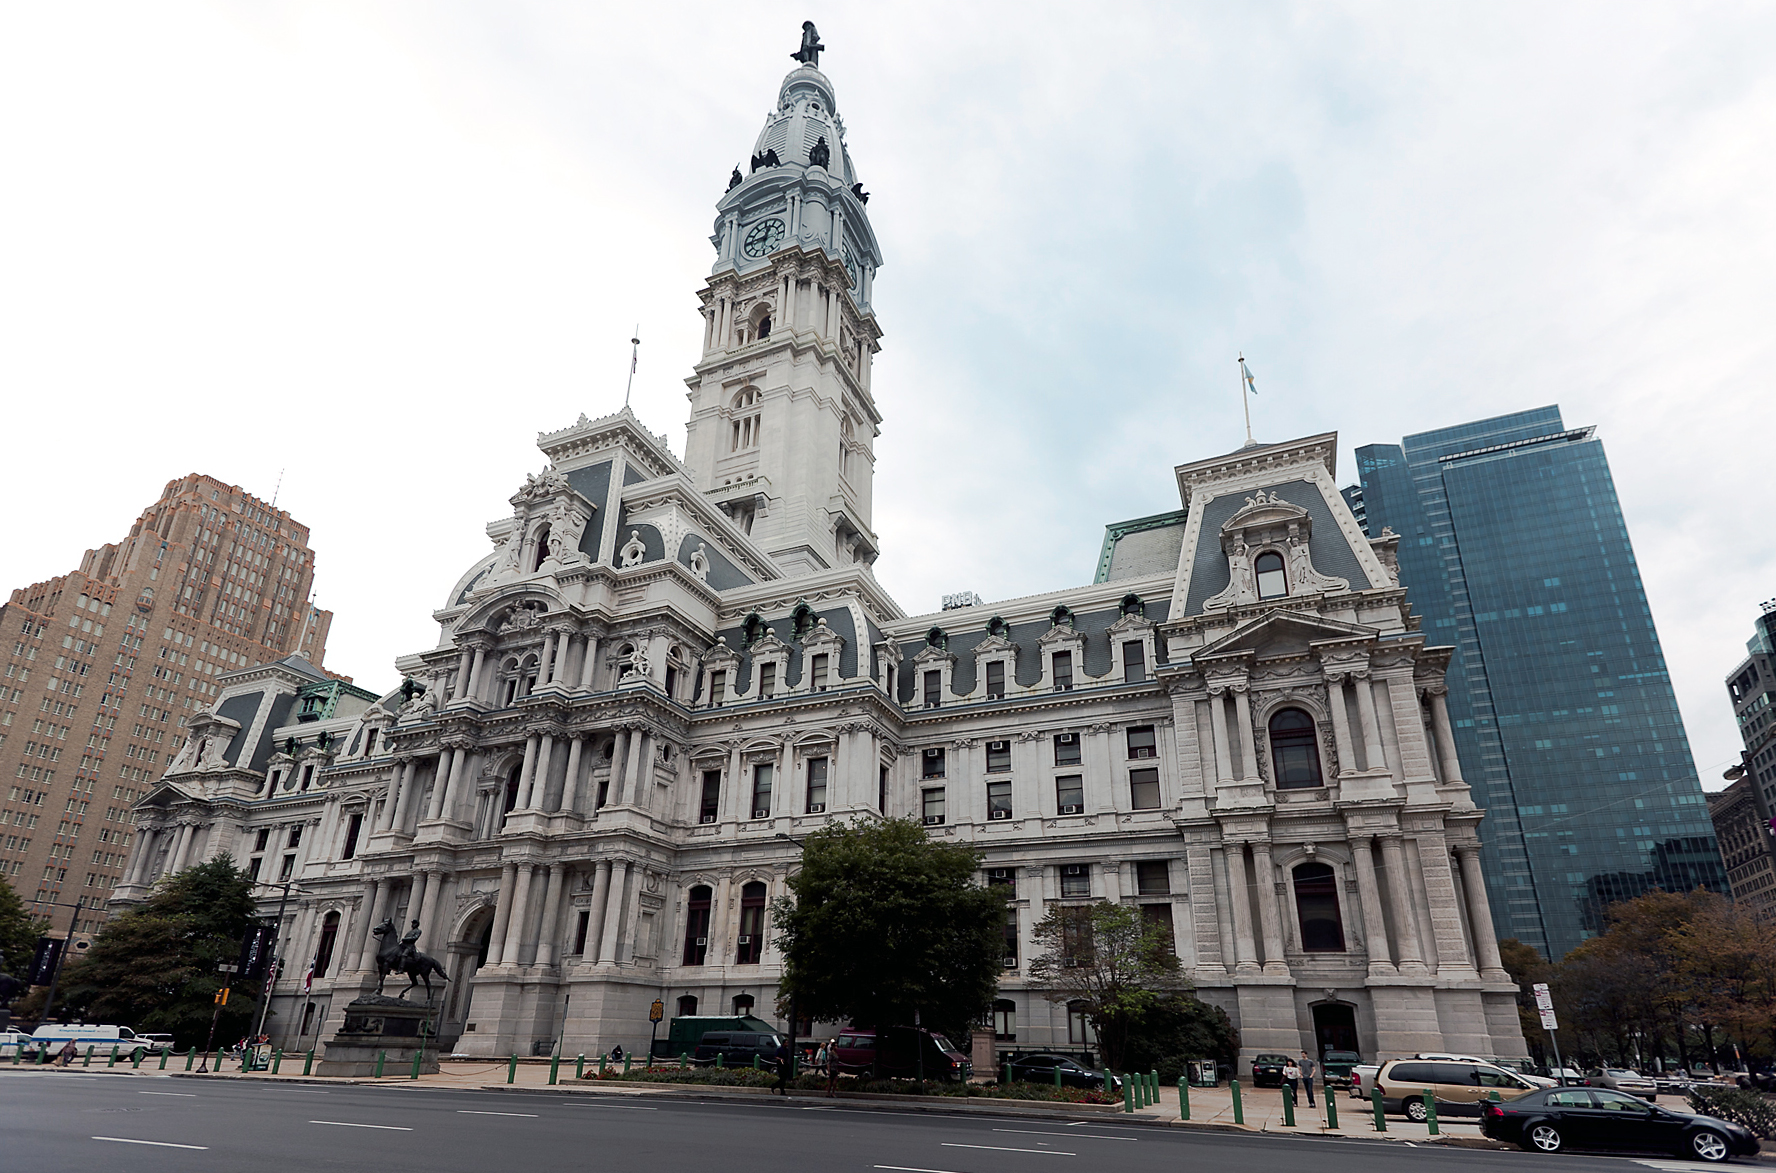 Philadelphia City Hall in Philadelphia, PA. Tallest building in the world from 1901 to 1908. Courtesy of the Internet.